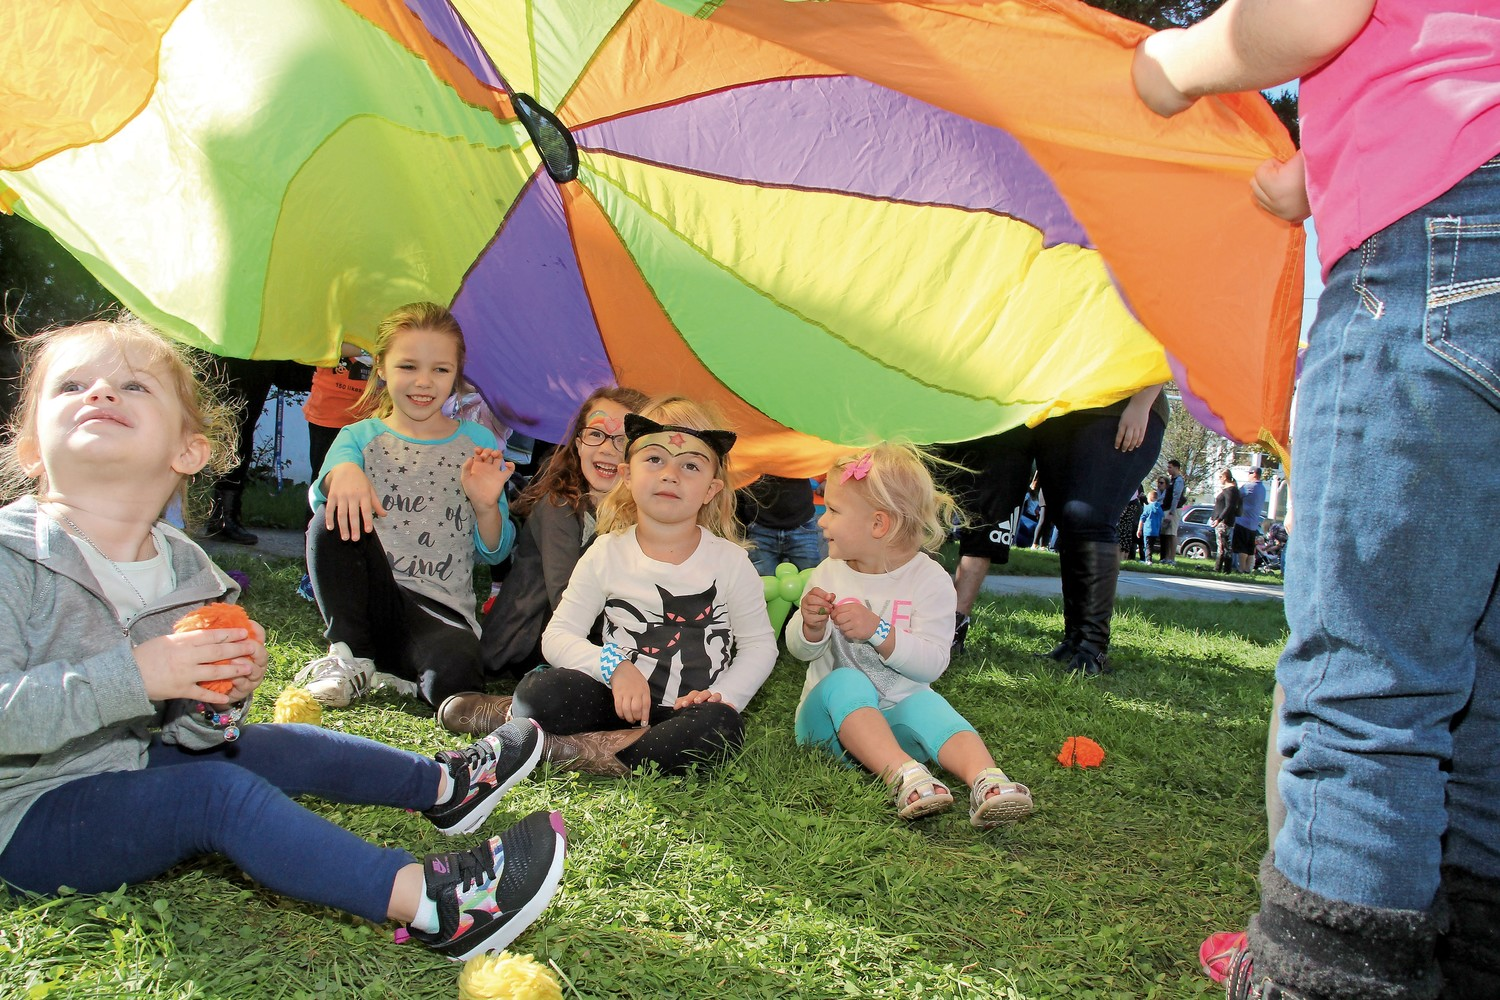 Children in the Pixie Nursery School program had some fun under a parachute on the front lawn of Wantagh Memorial Congregational Church.